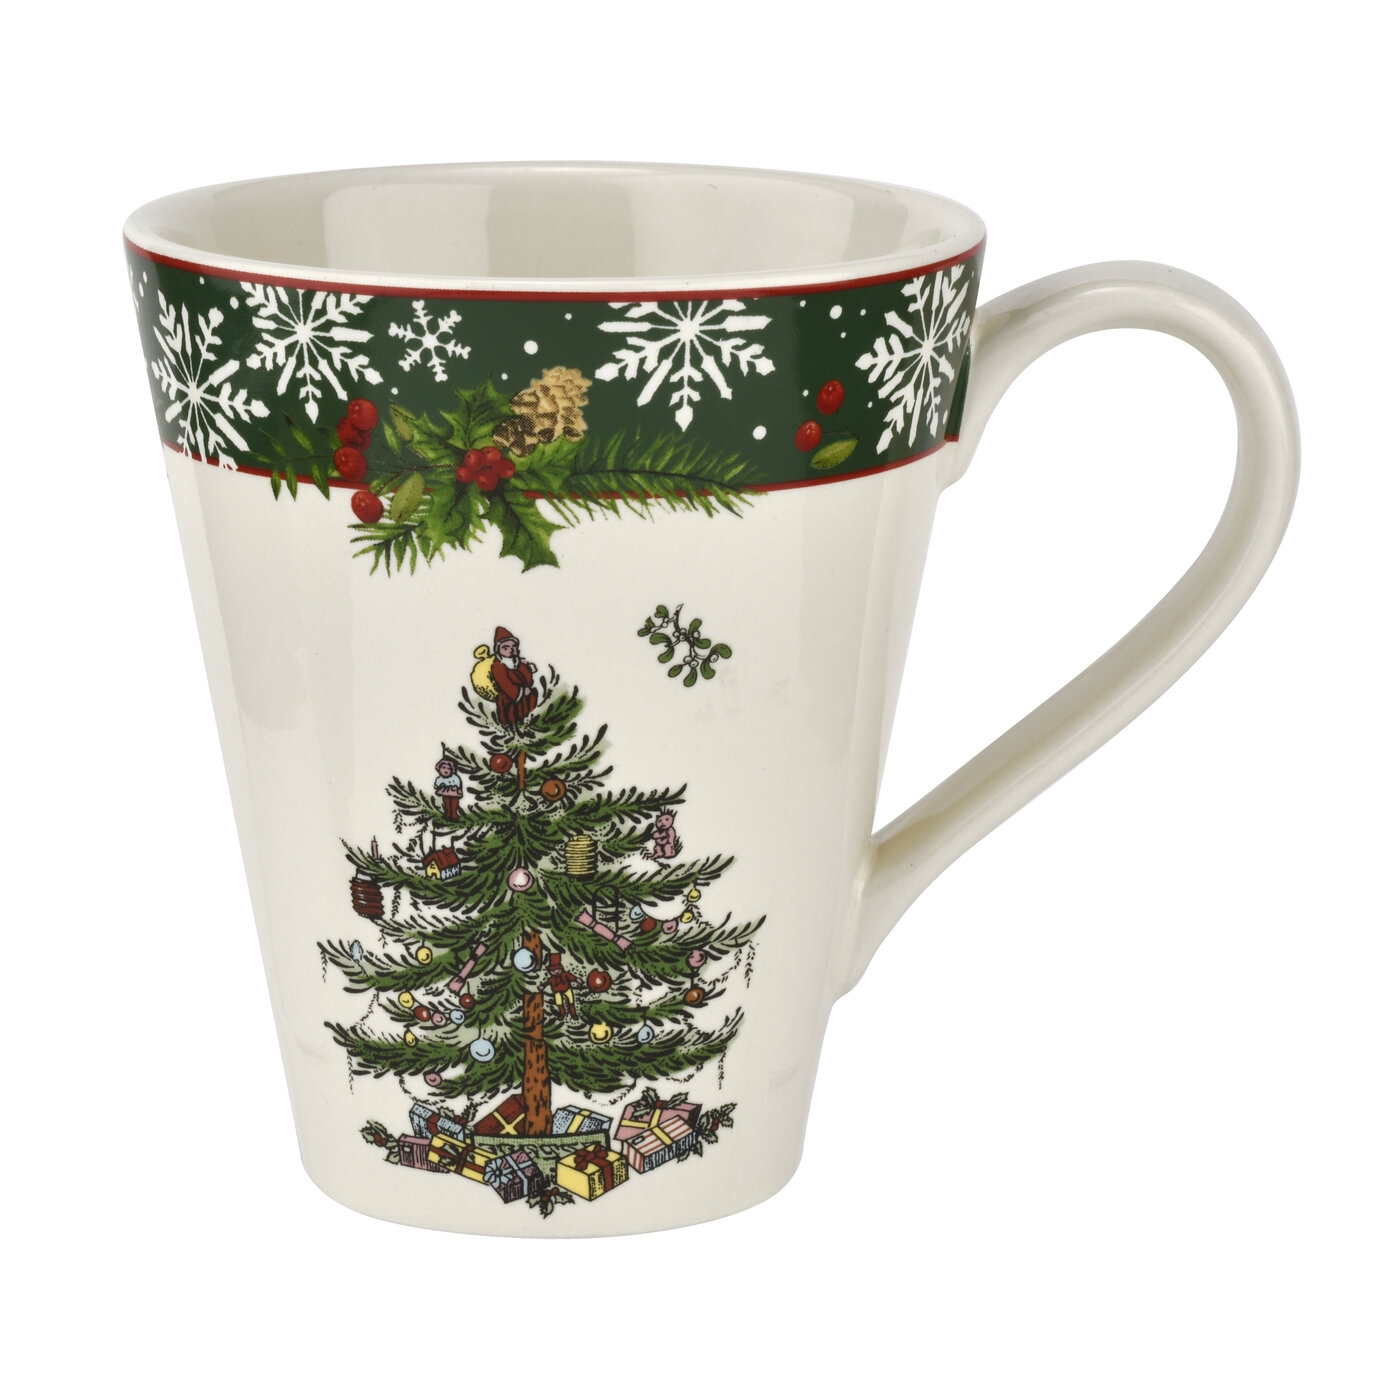 Spode Christmas Tree 2019 Annual Mandarin 14oz Mug image number 0